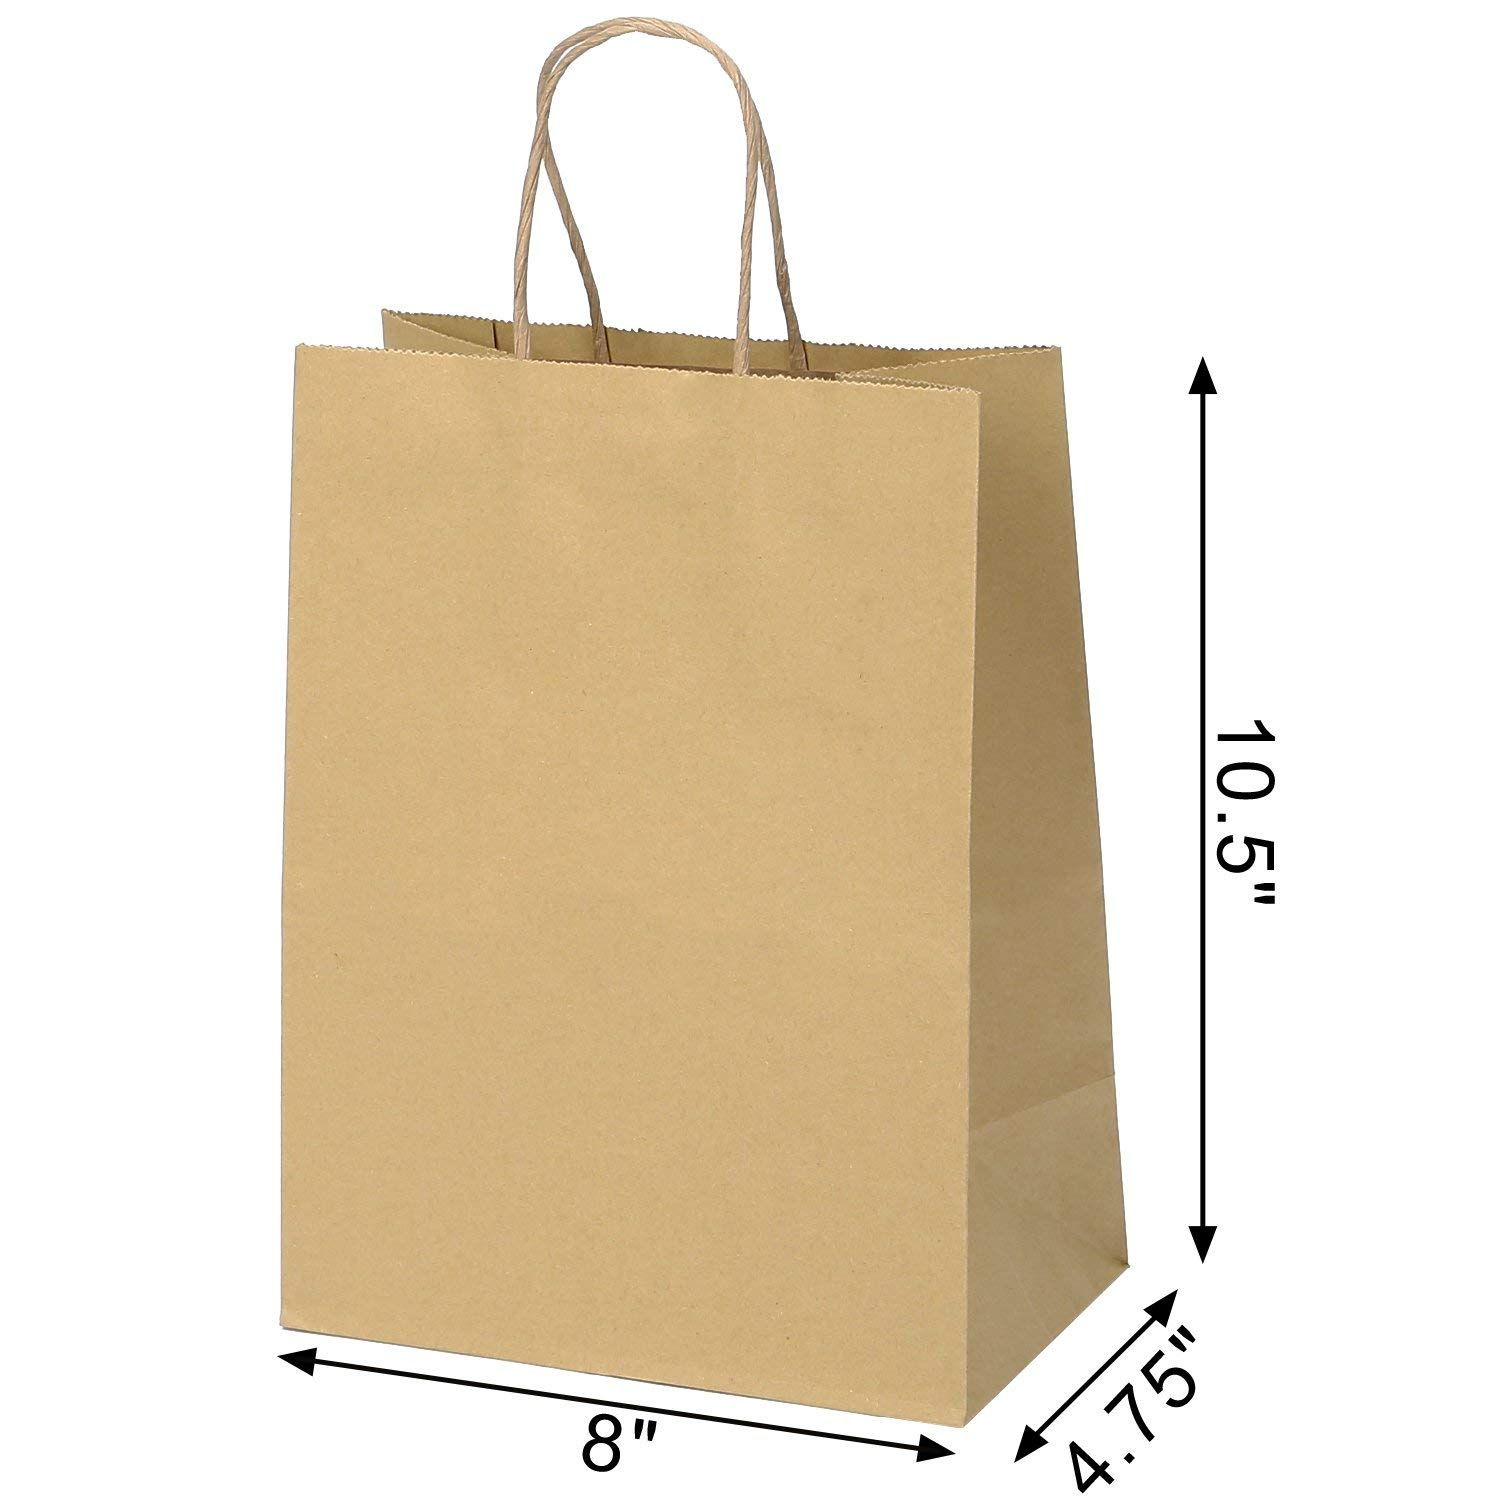 546905d884c ROAD 8x4.75x10.5 Inches 100pcs Assorted Kraft Paper Bags, Multi Color  Retail Paper Bags with Handles, Merchandise Bag, Gift Bag, Wedding Party  Bag: ...